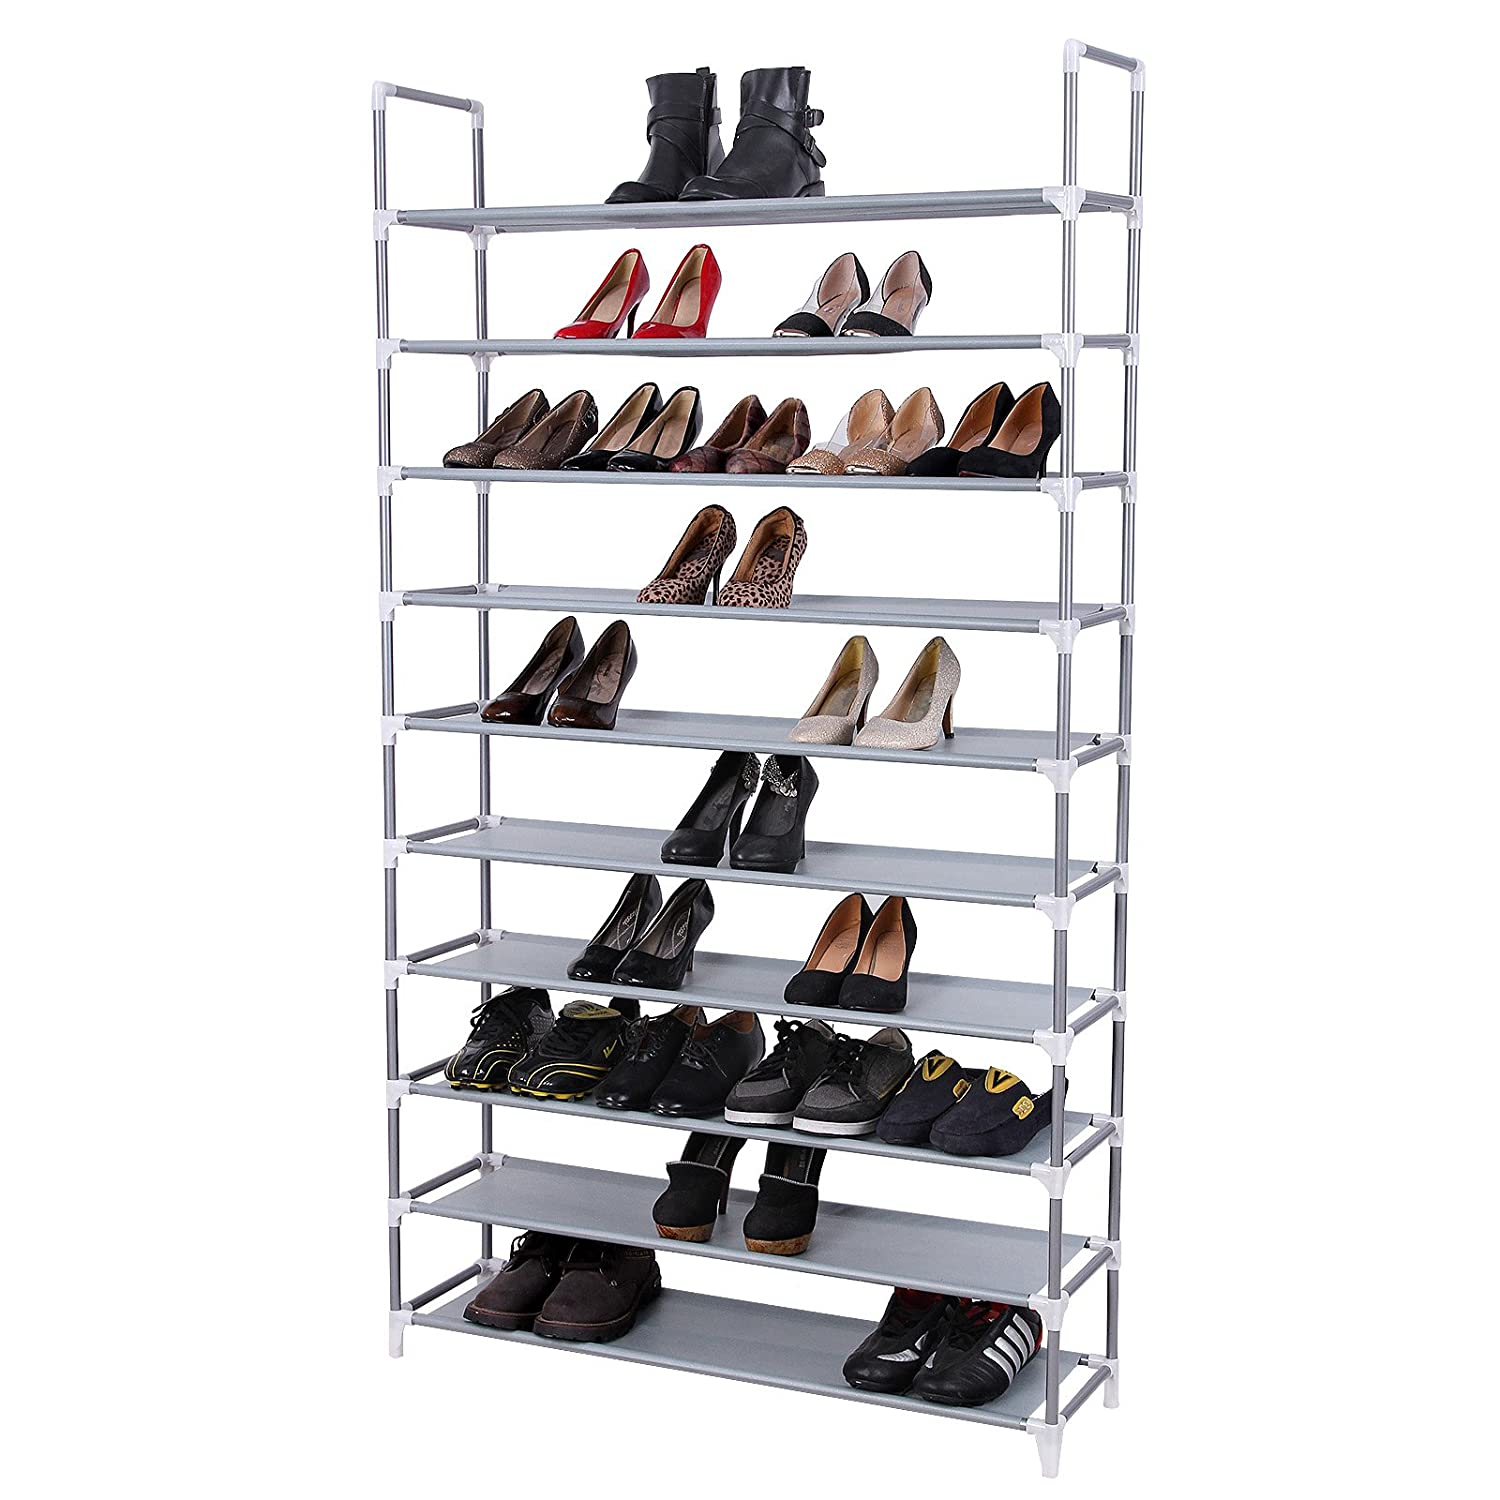 SONGMICS 10 Tiers Shoe Rack 50 Pairs Non-woven Fabric Shoe Tower Storage Organizer Cabinet 39.4 x 11.1 x 68.9 Inches ULSR10G